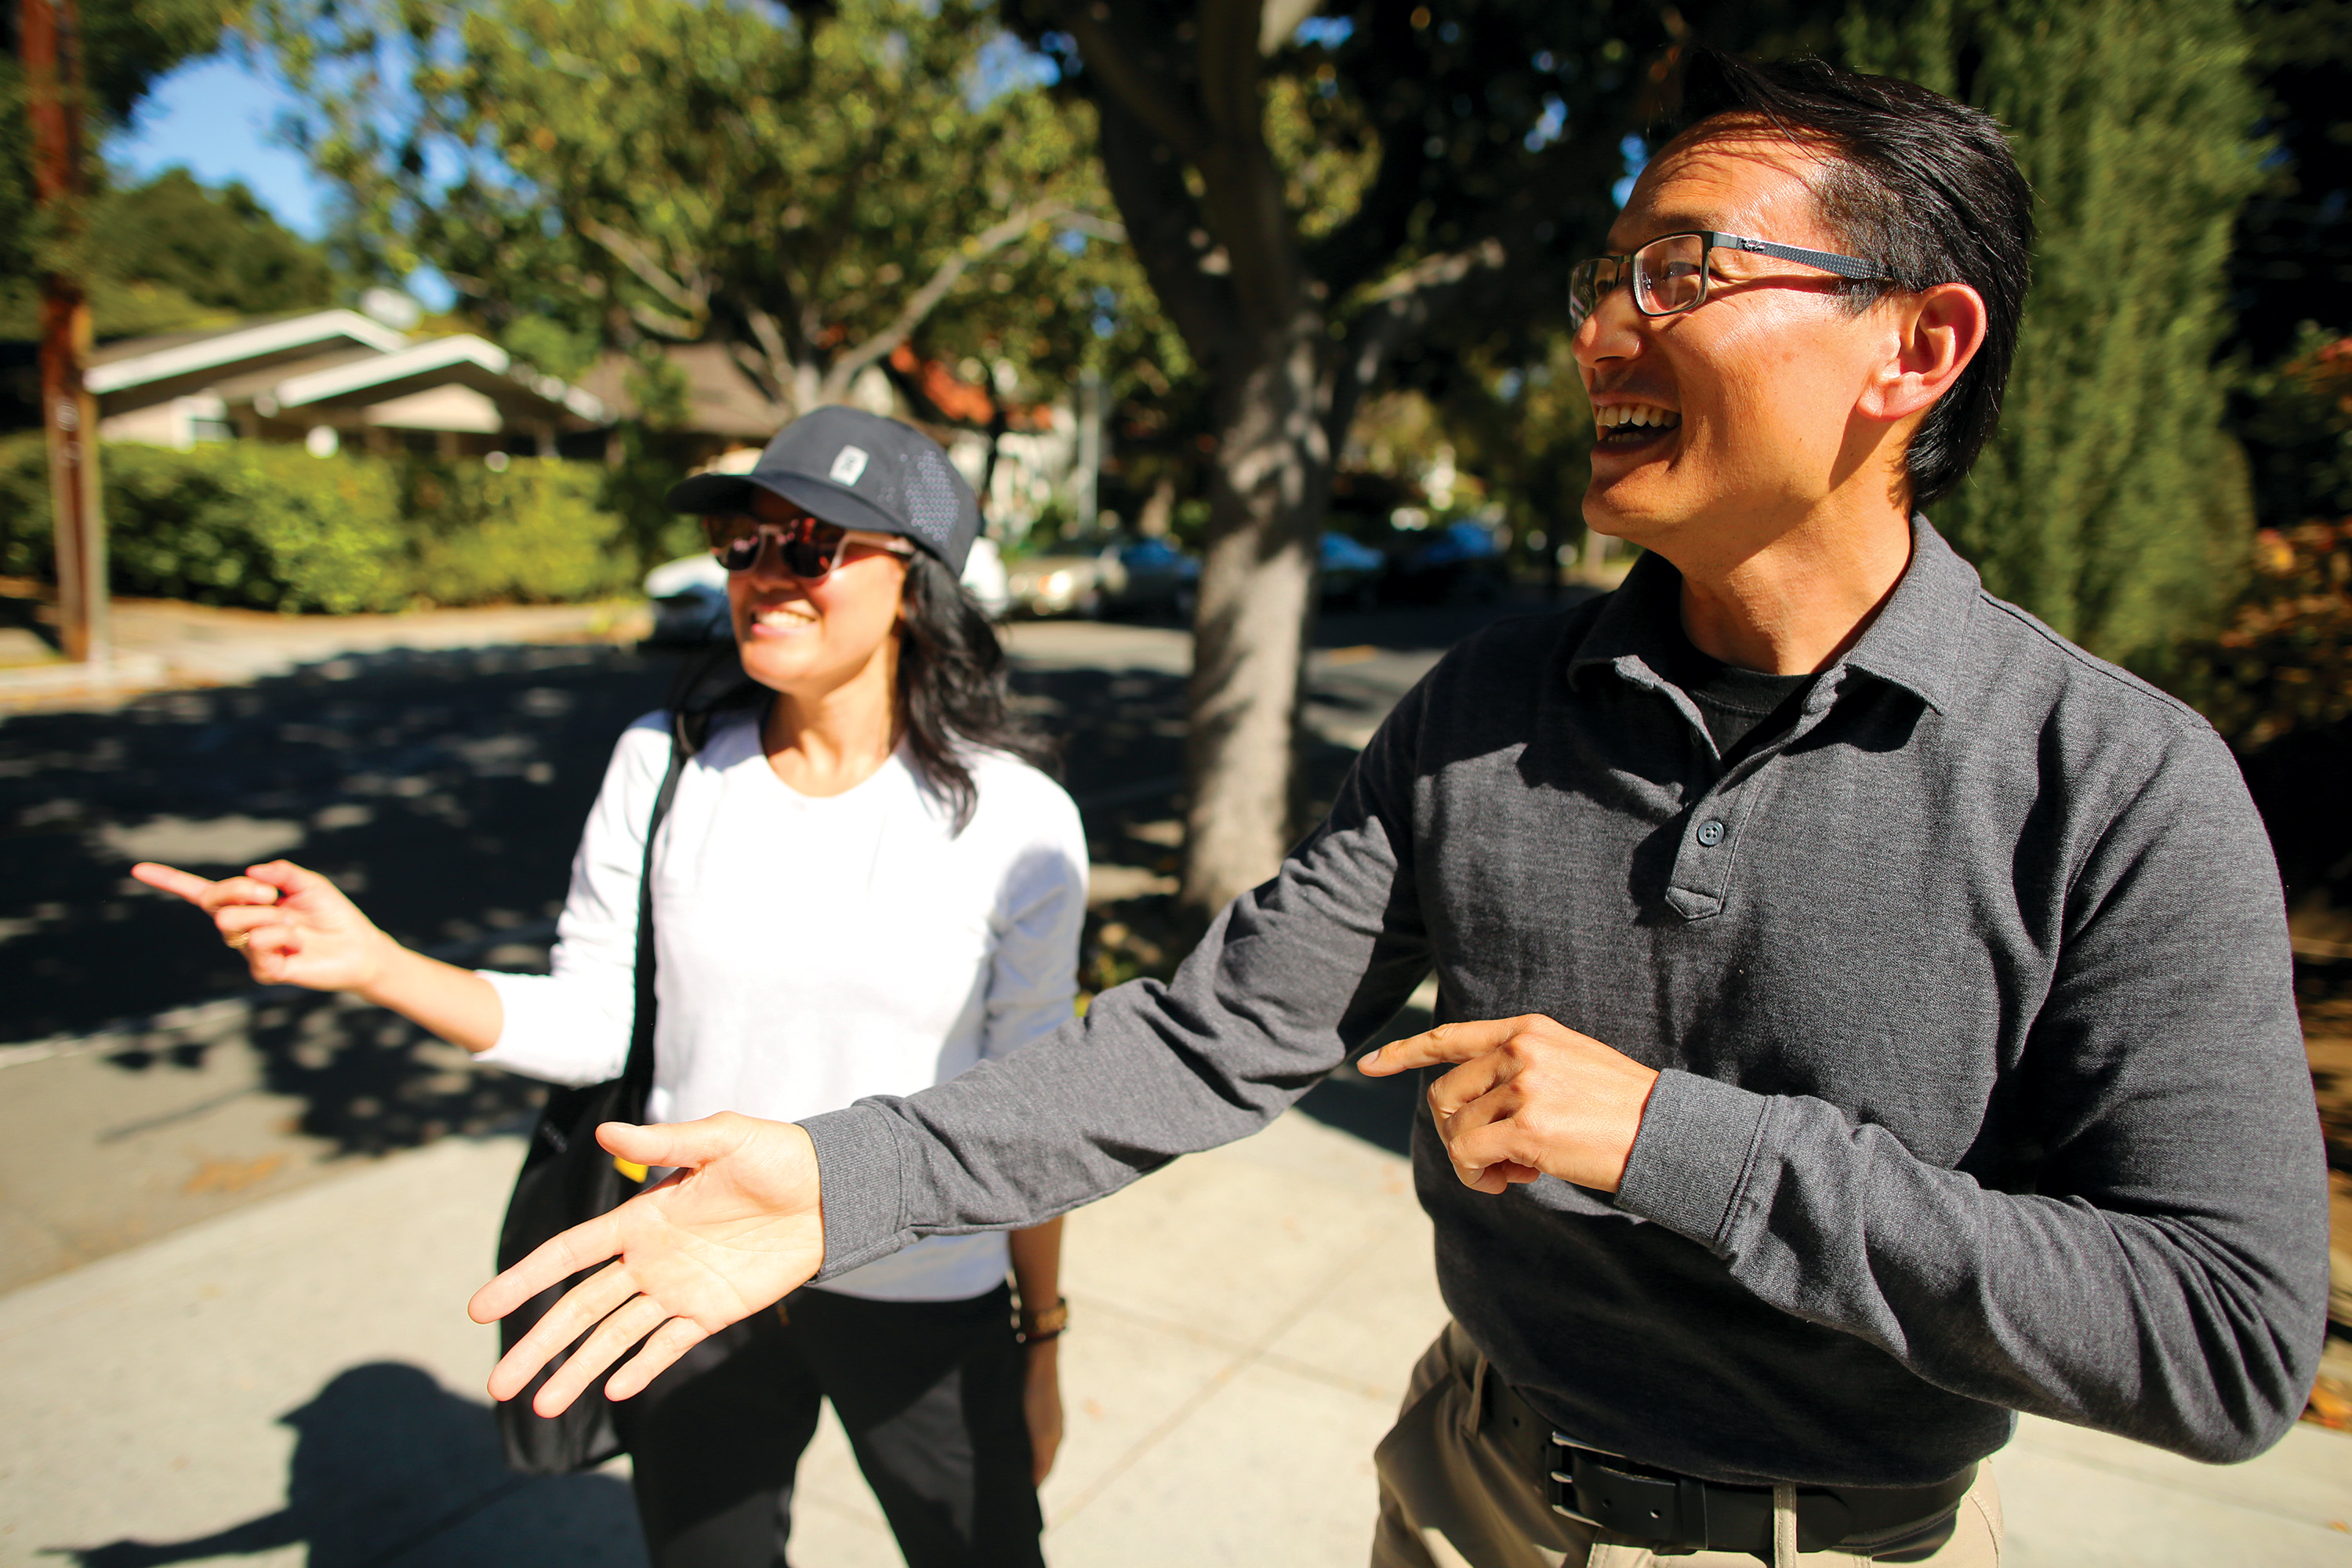 David Shen, a resident of Churchill Avenue, right, speaks with Irene Au outside of his home on Oct. 2. Photo by Sammy Dallal.